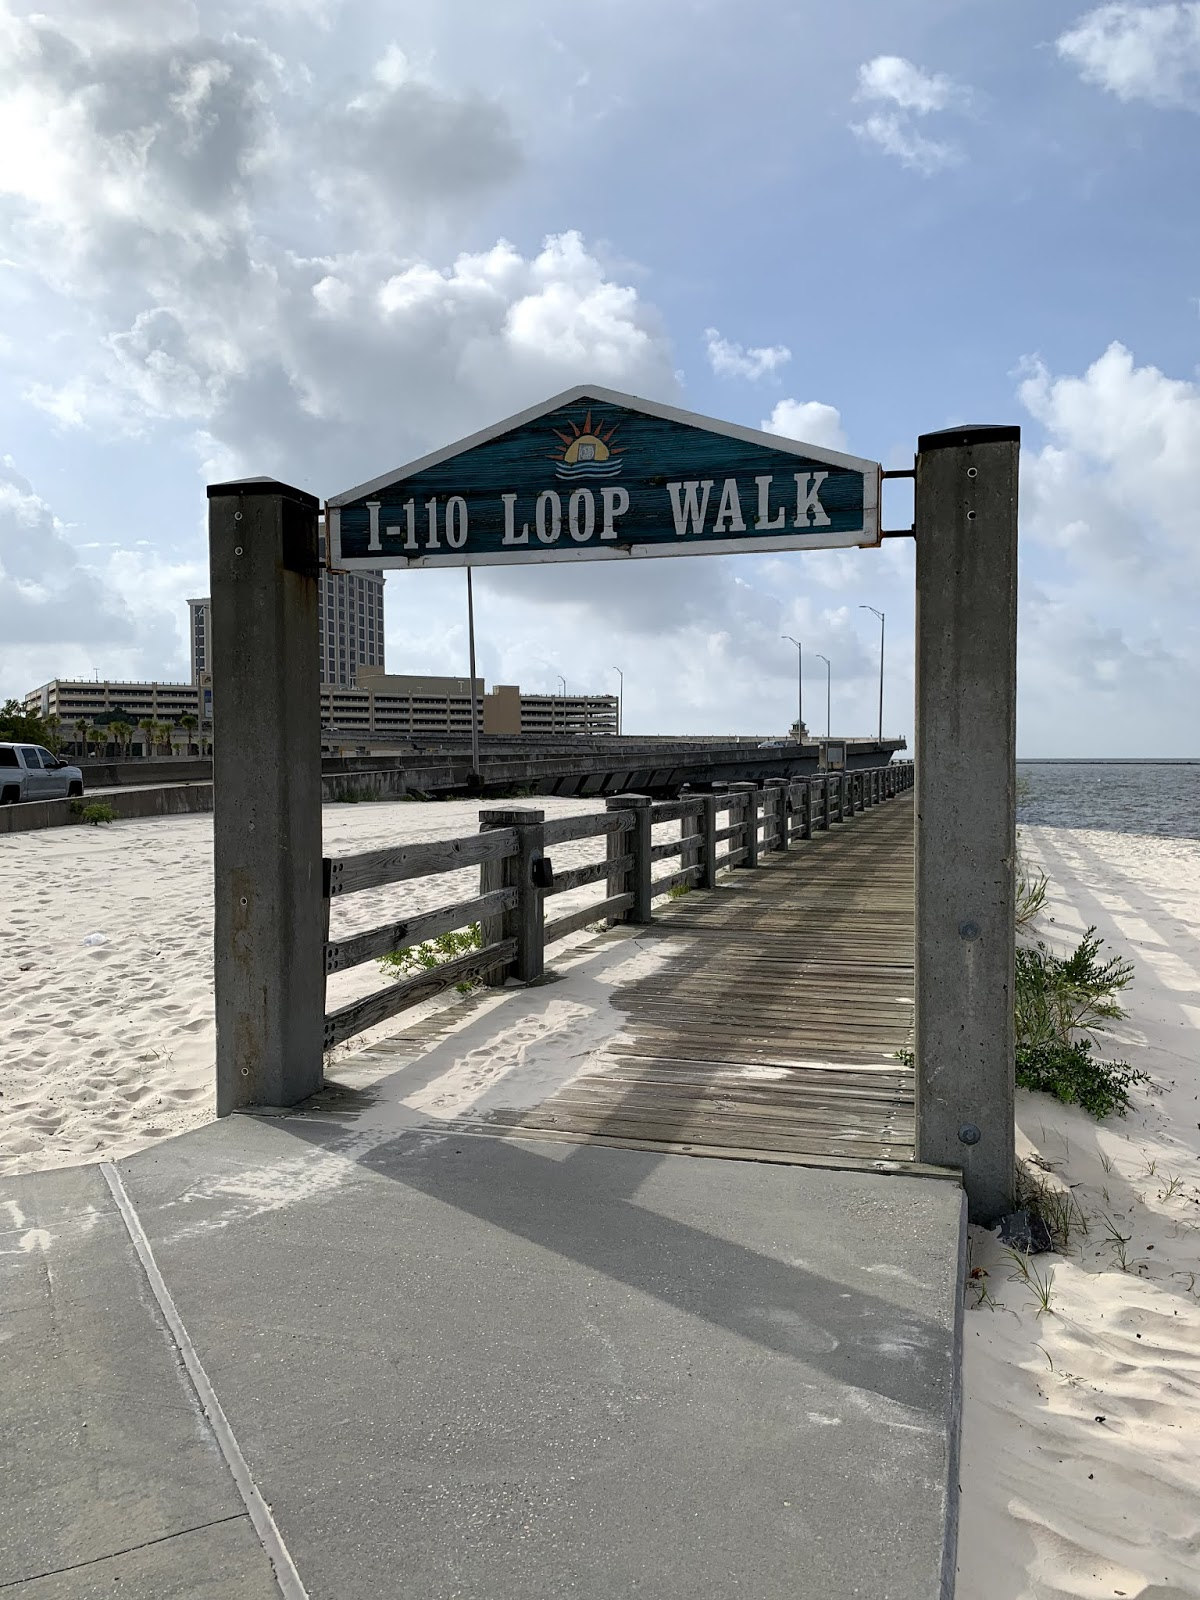 Stephanie Kamp Blog: Biloxi Mississippi June 2019 Day 2